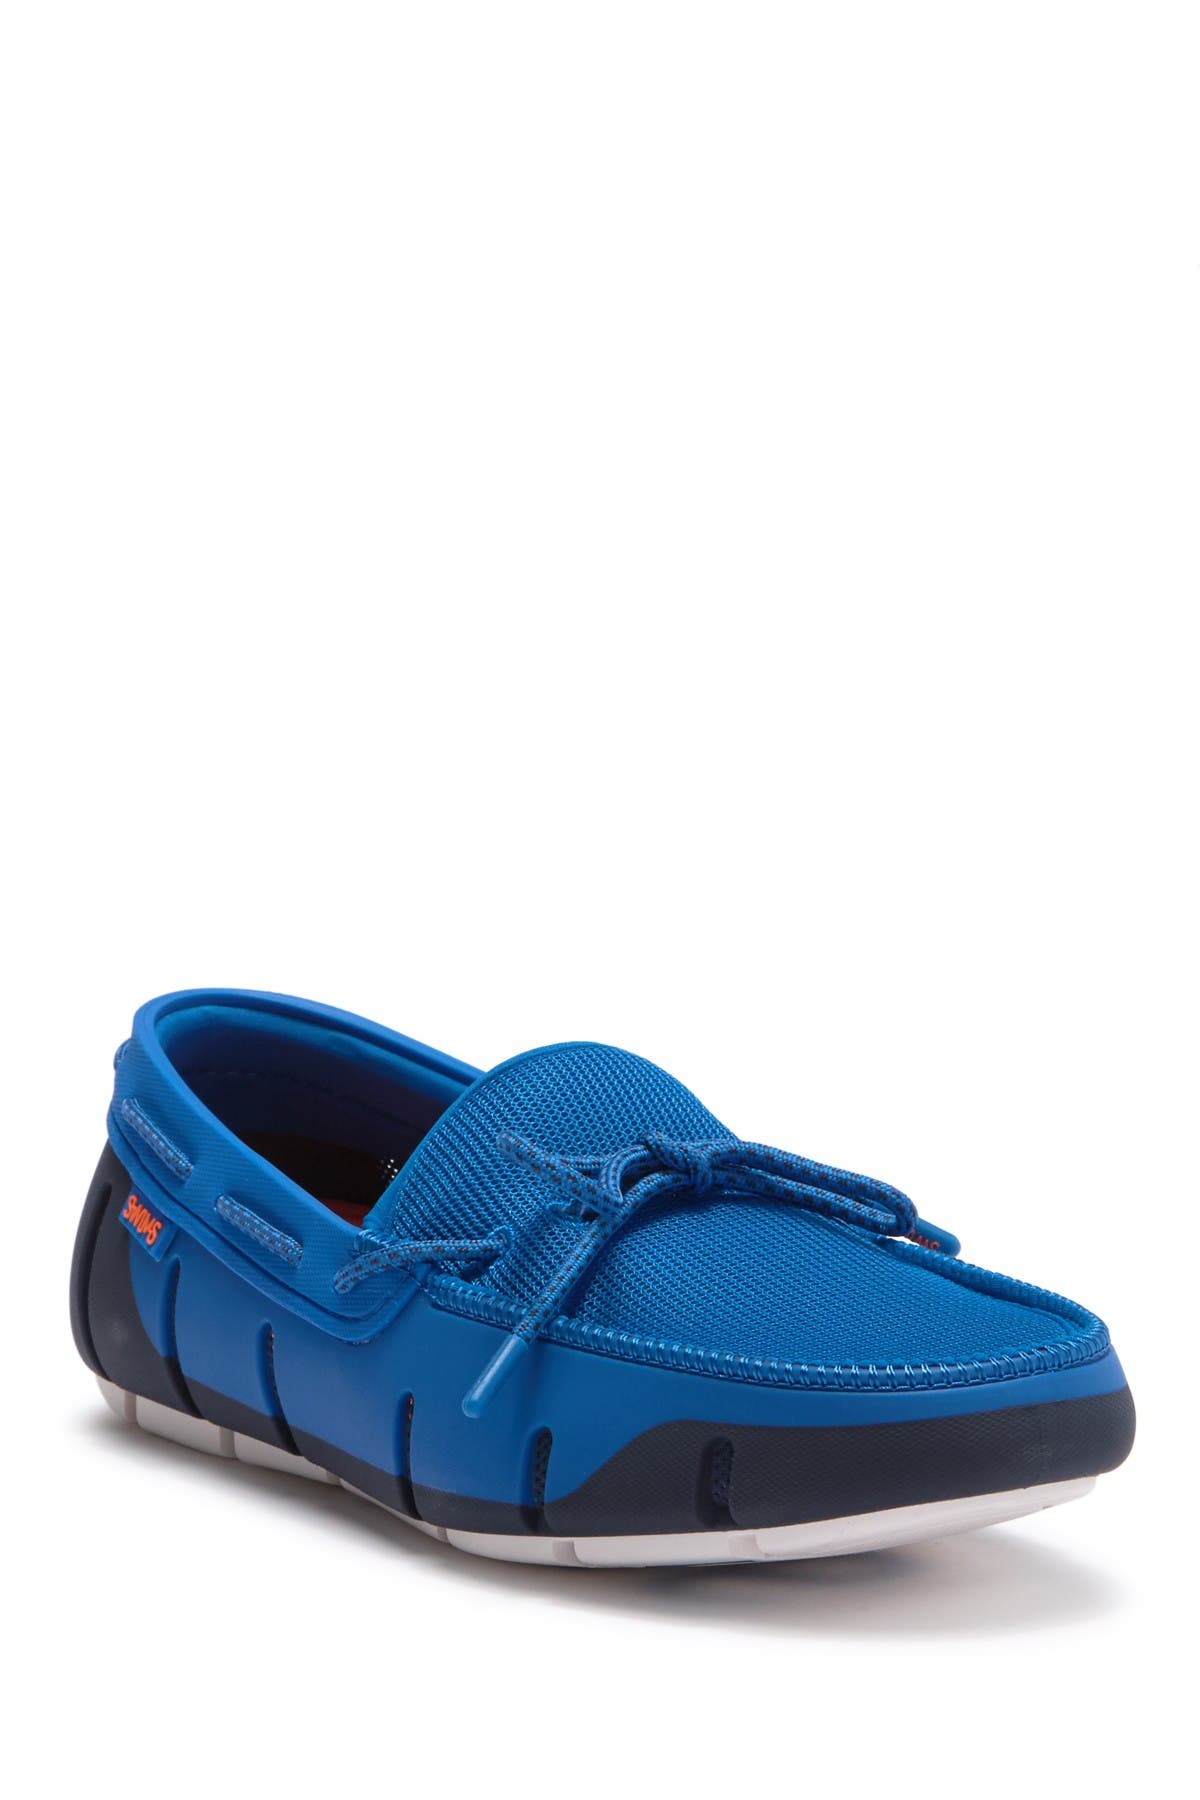 Image of Swims Stride Lace Loafer